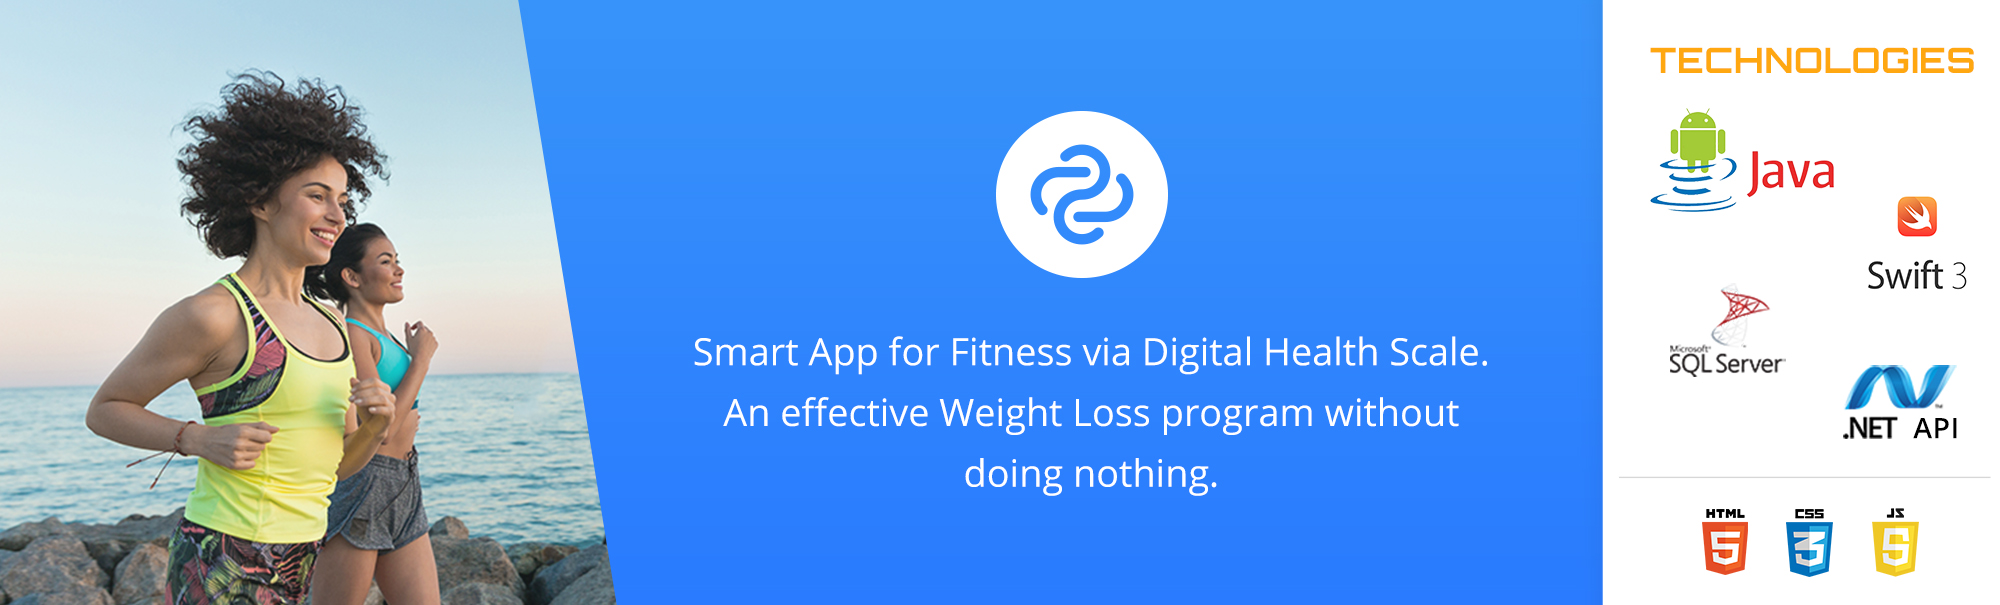 Digital Health Scale App   Weight Scale Mobile App   Case Study